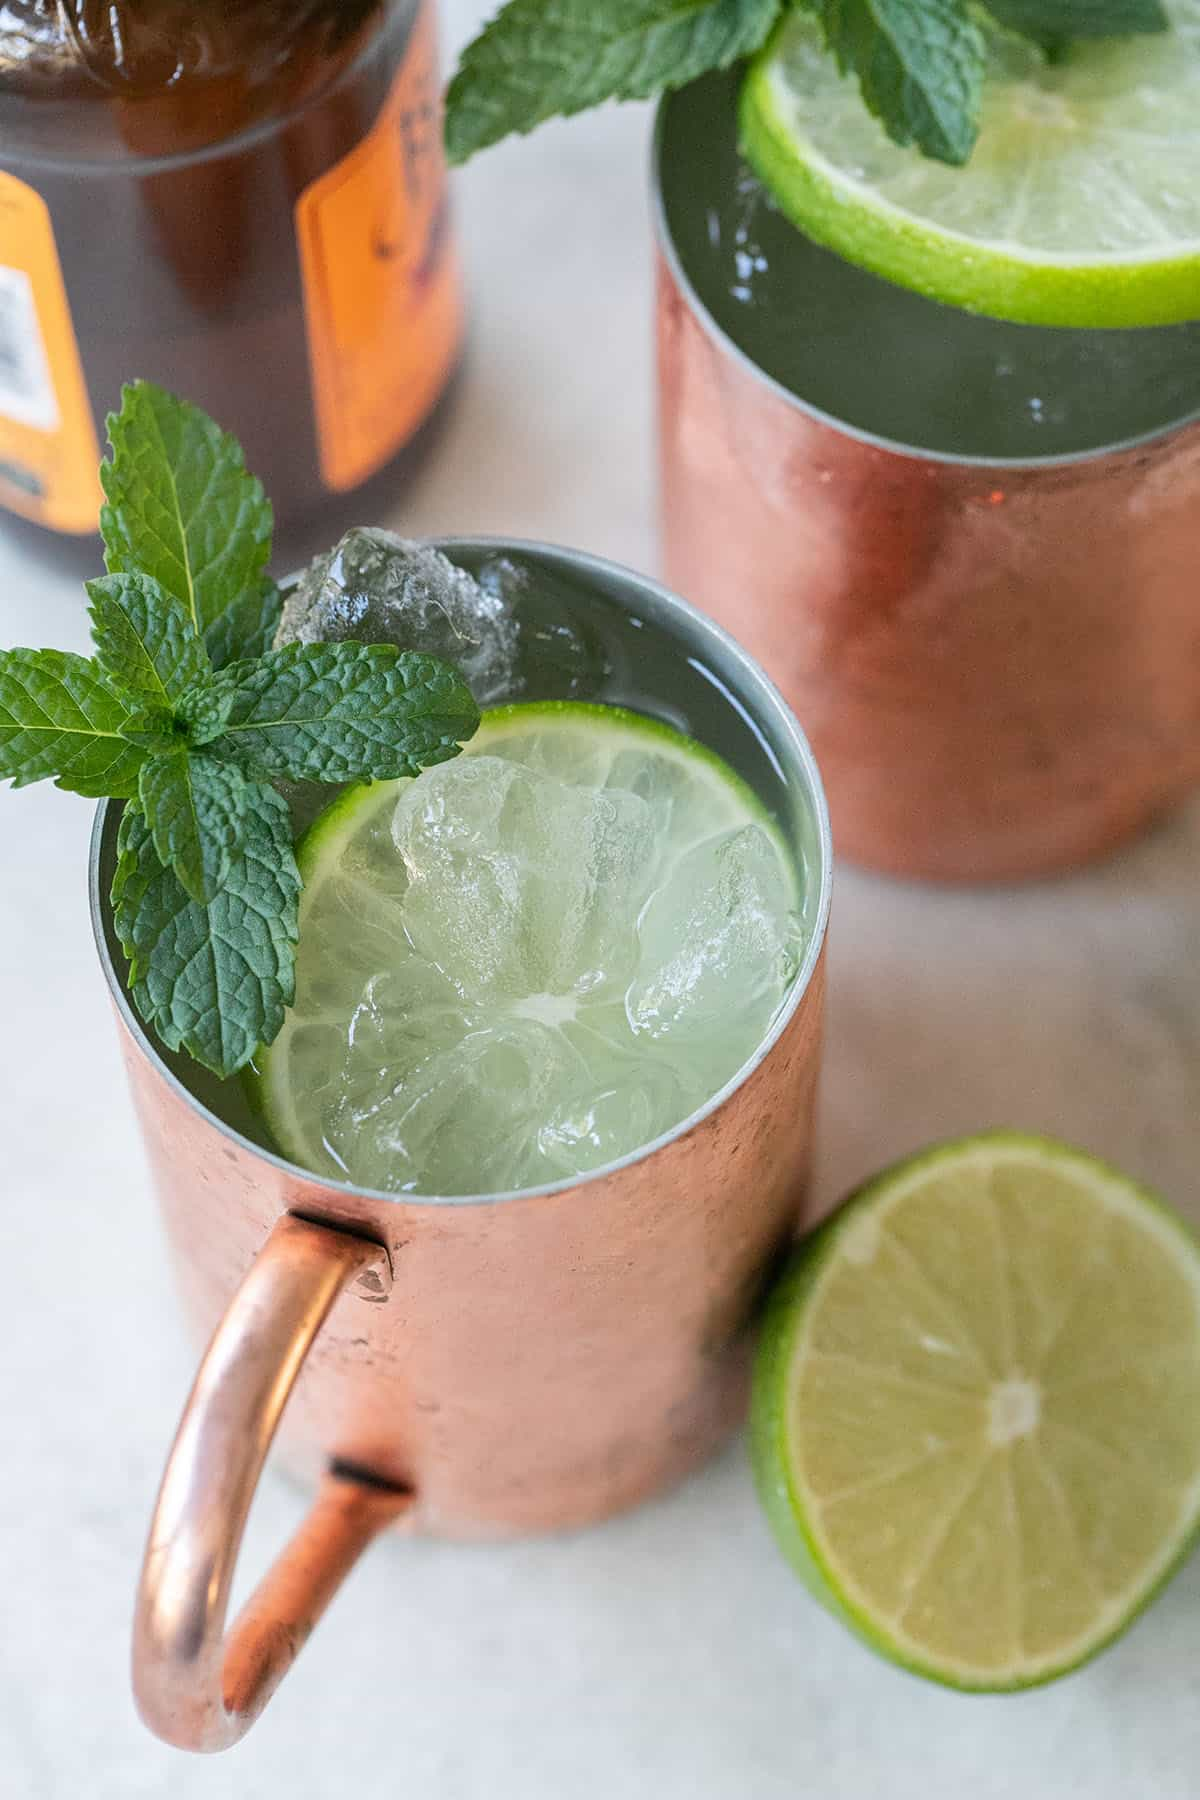 Cheap mixed drinks is a Moscow mule in a copper mug